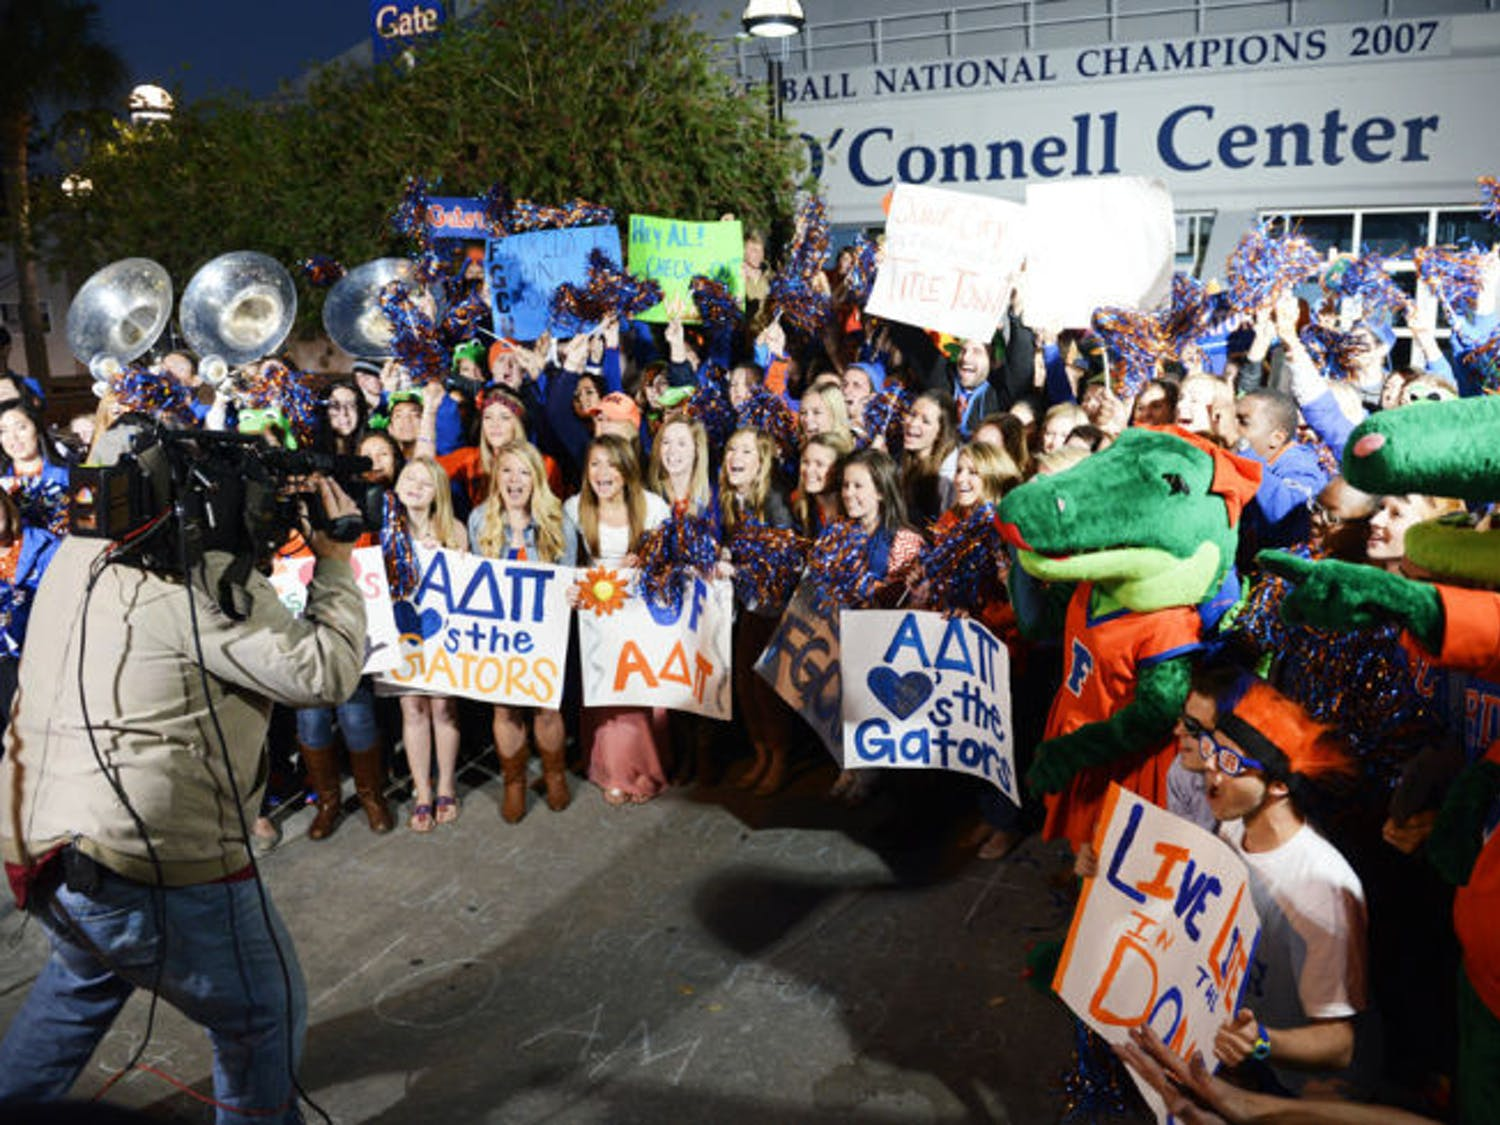 """Students gather in front of the Stephen C. O'Connell Center on Friday morning as part of a live broadcast on NBC's """"Today"""" show in support of the UF men's basketball team."""